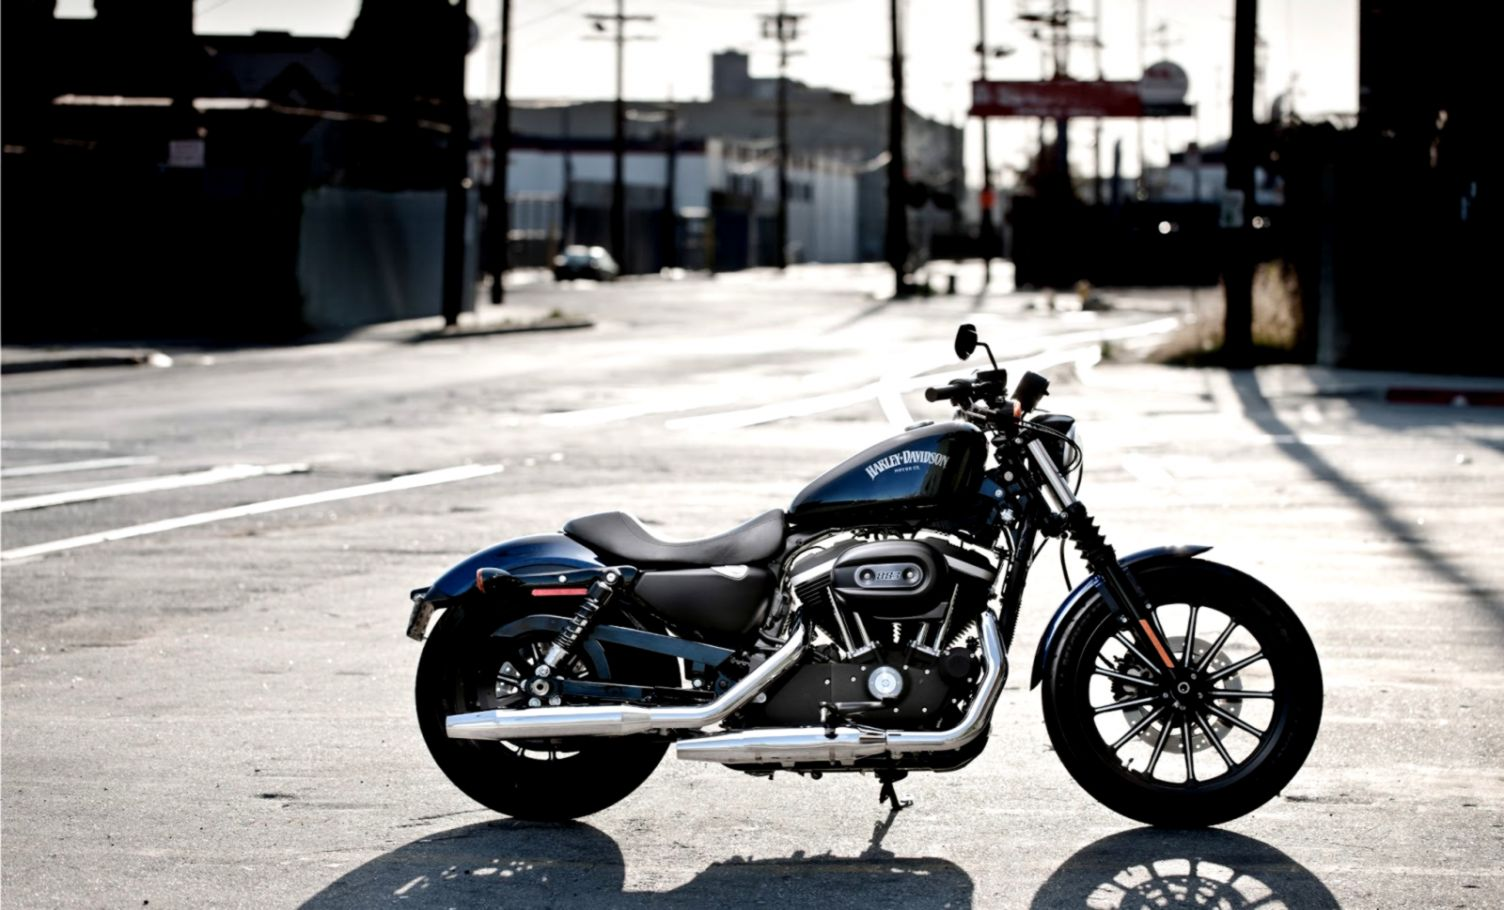 Harley Davidson Wallpaper Widescreen All Hd Wallpapers Gallery